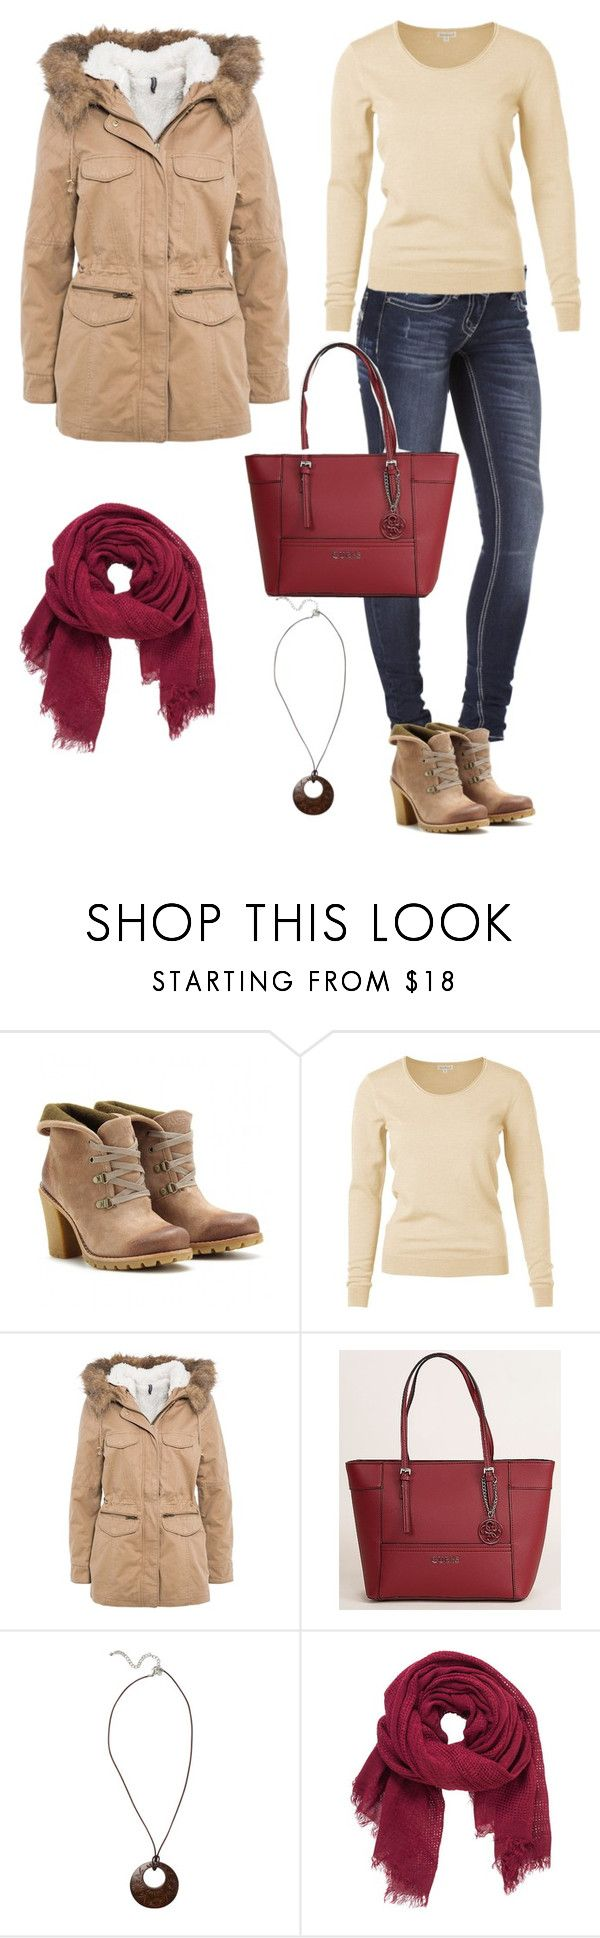 """""""ankle boots"""" by liliana-vaccara ❤ liked on Polyvore featuring UGG Australia, Naf Naf, GUESS, Fat Face and maurices"""